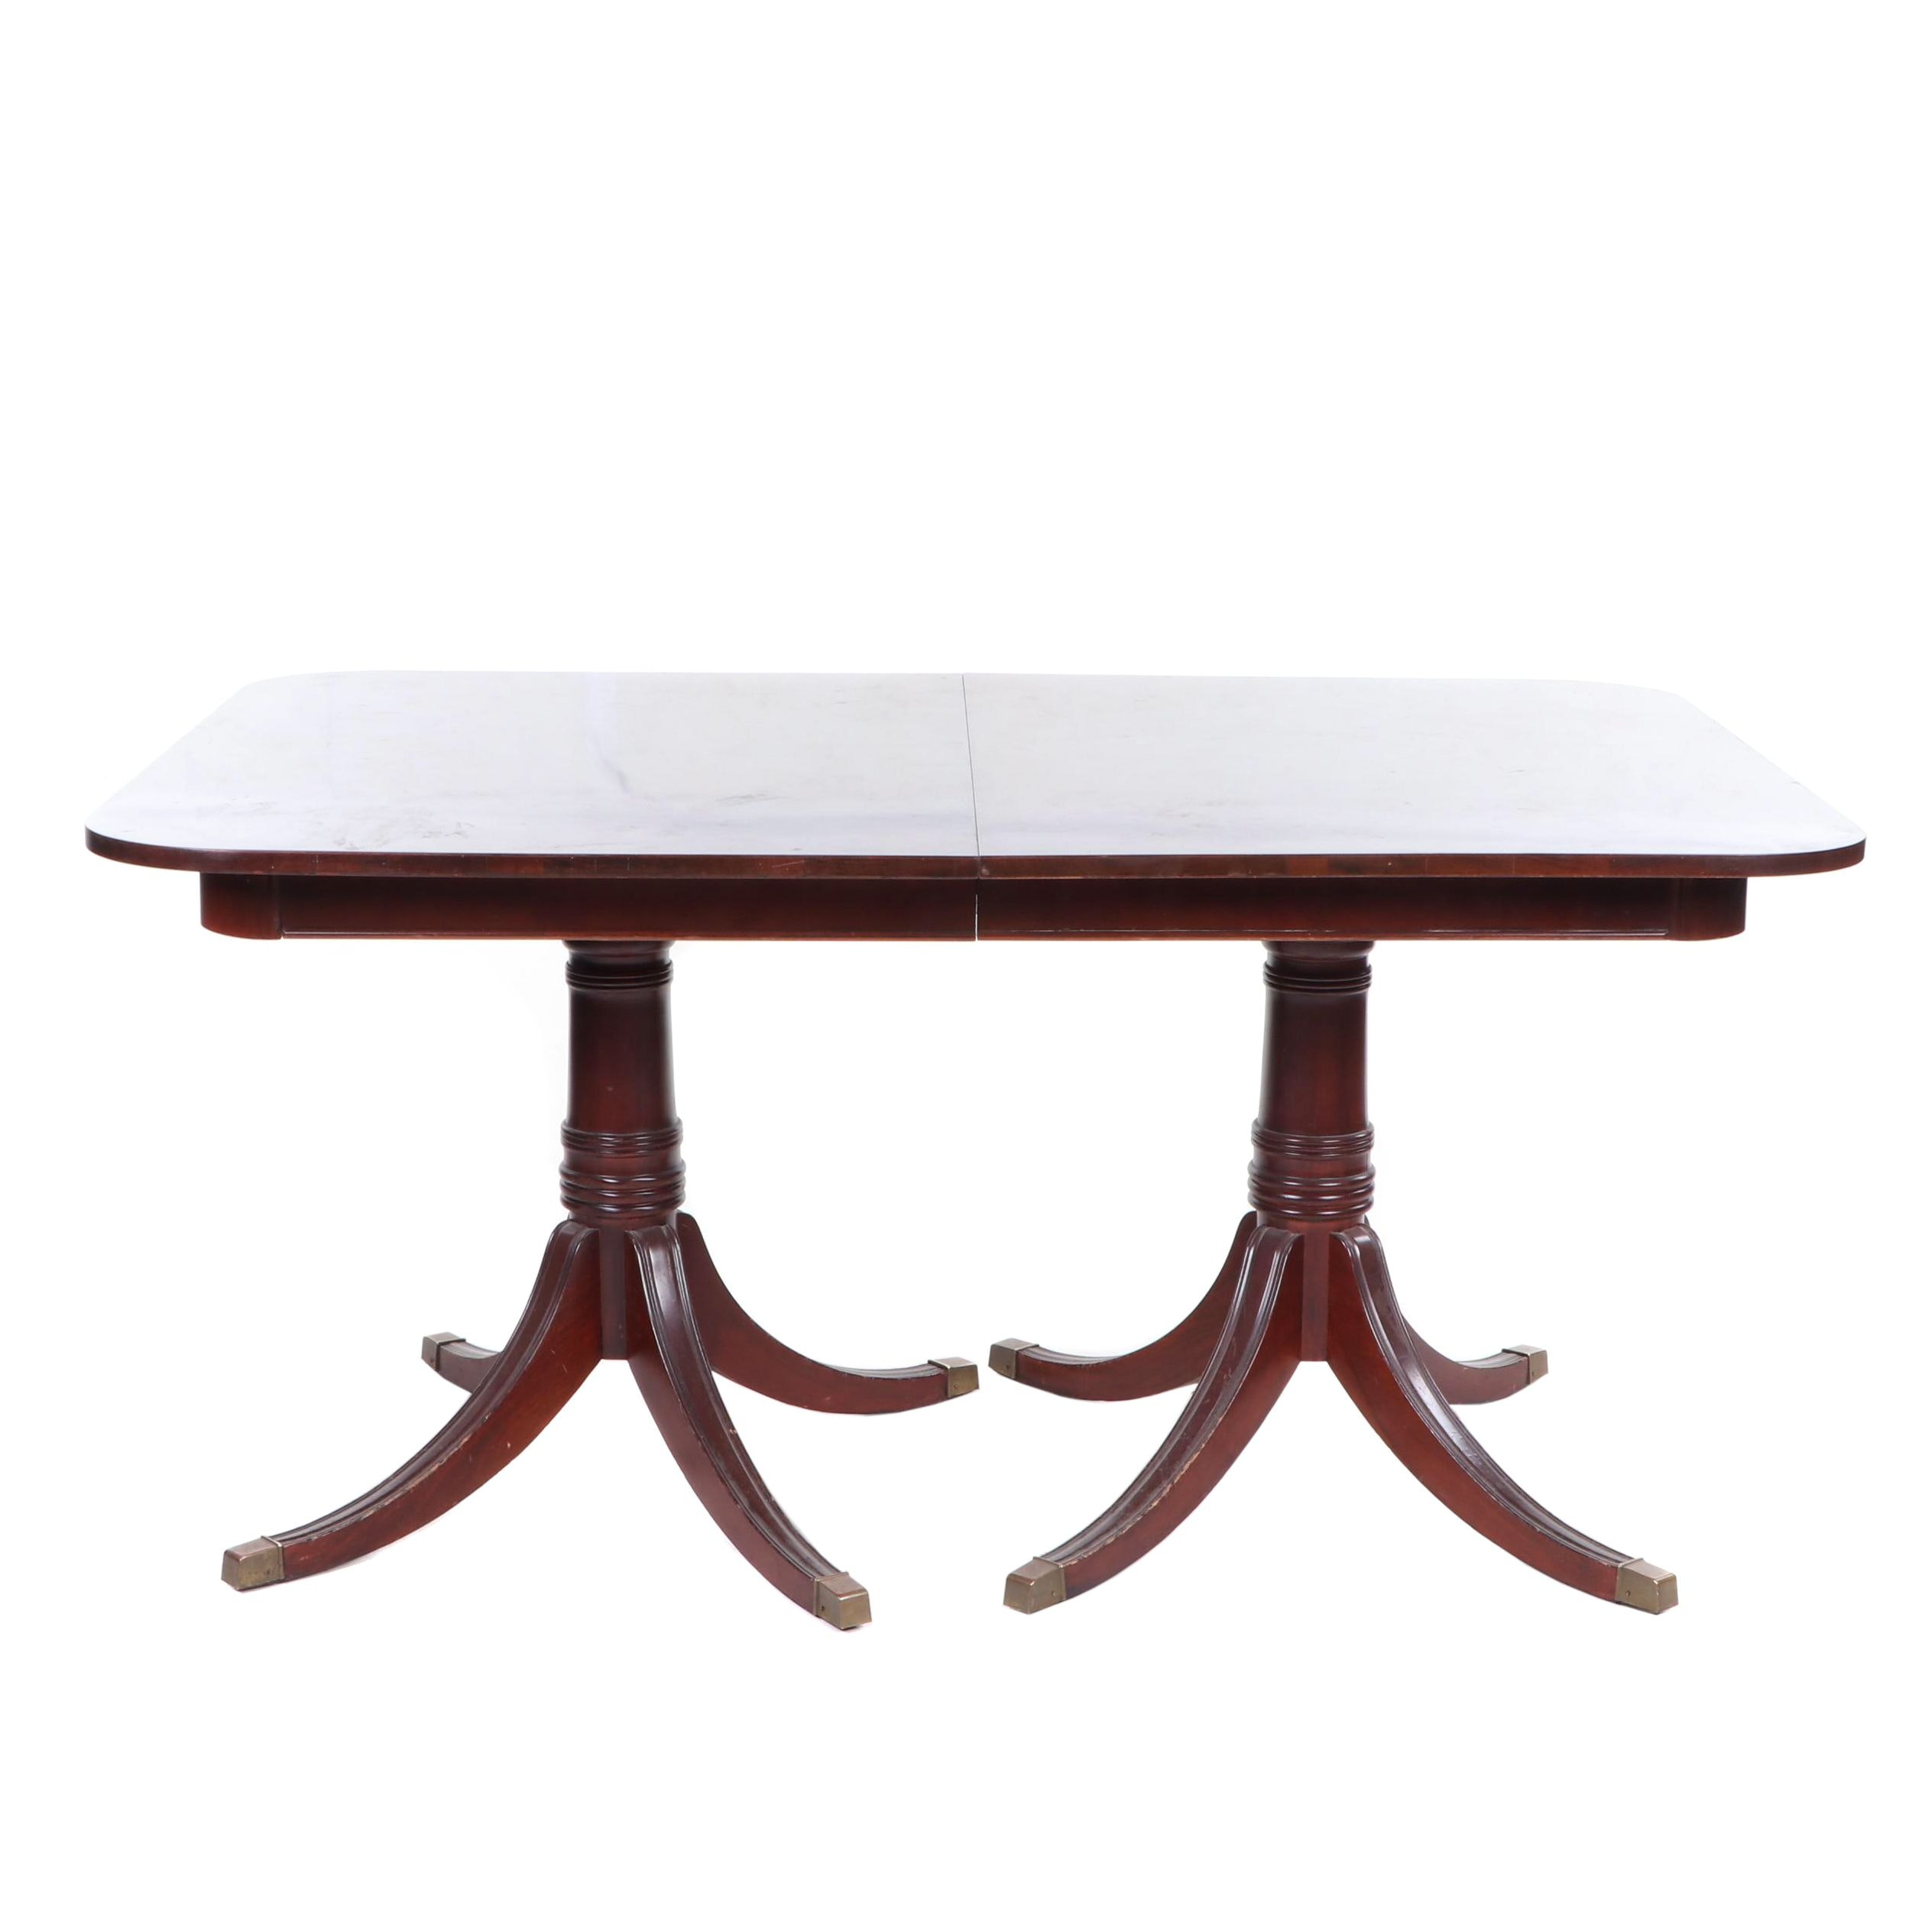 Duncan Phyfe Style Mahogany Double Pedestal Dining Room Table, Contemporary